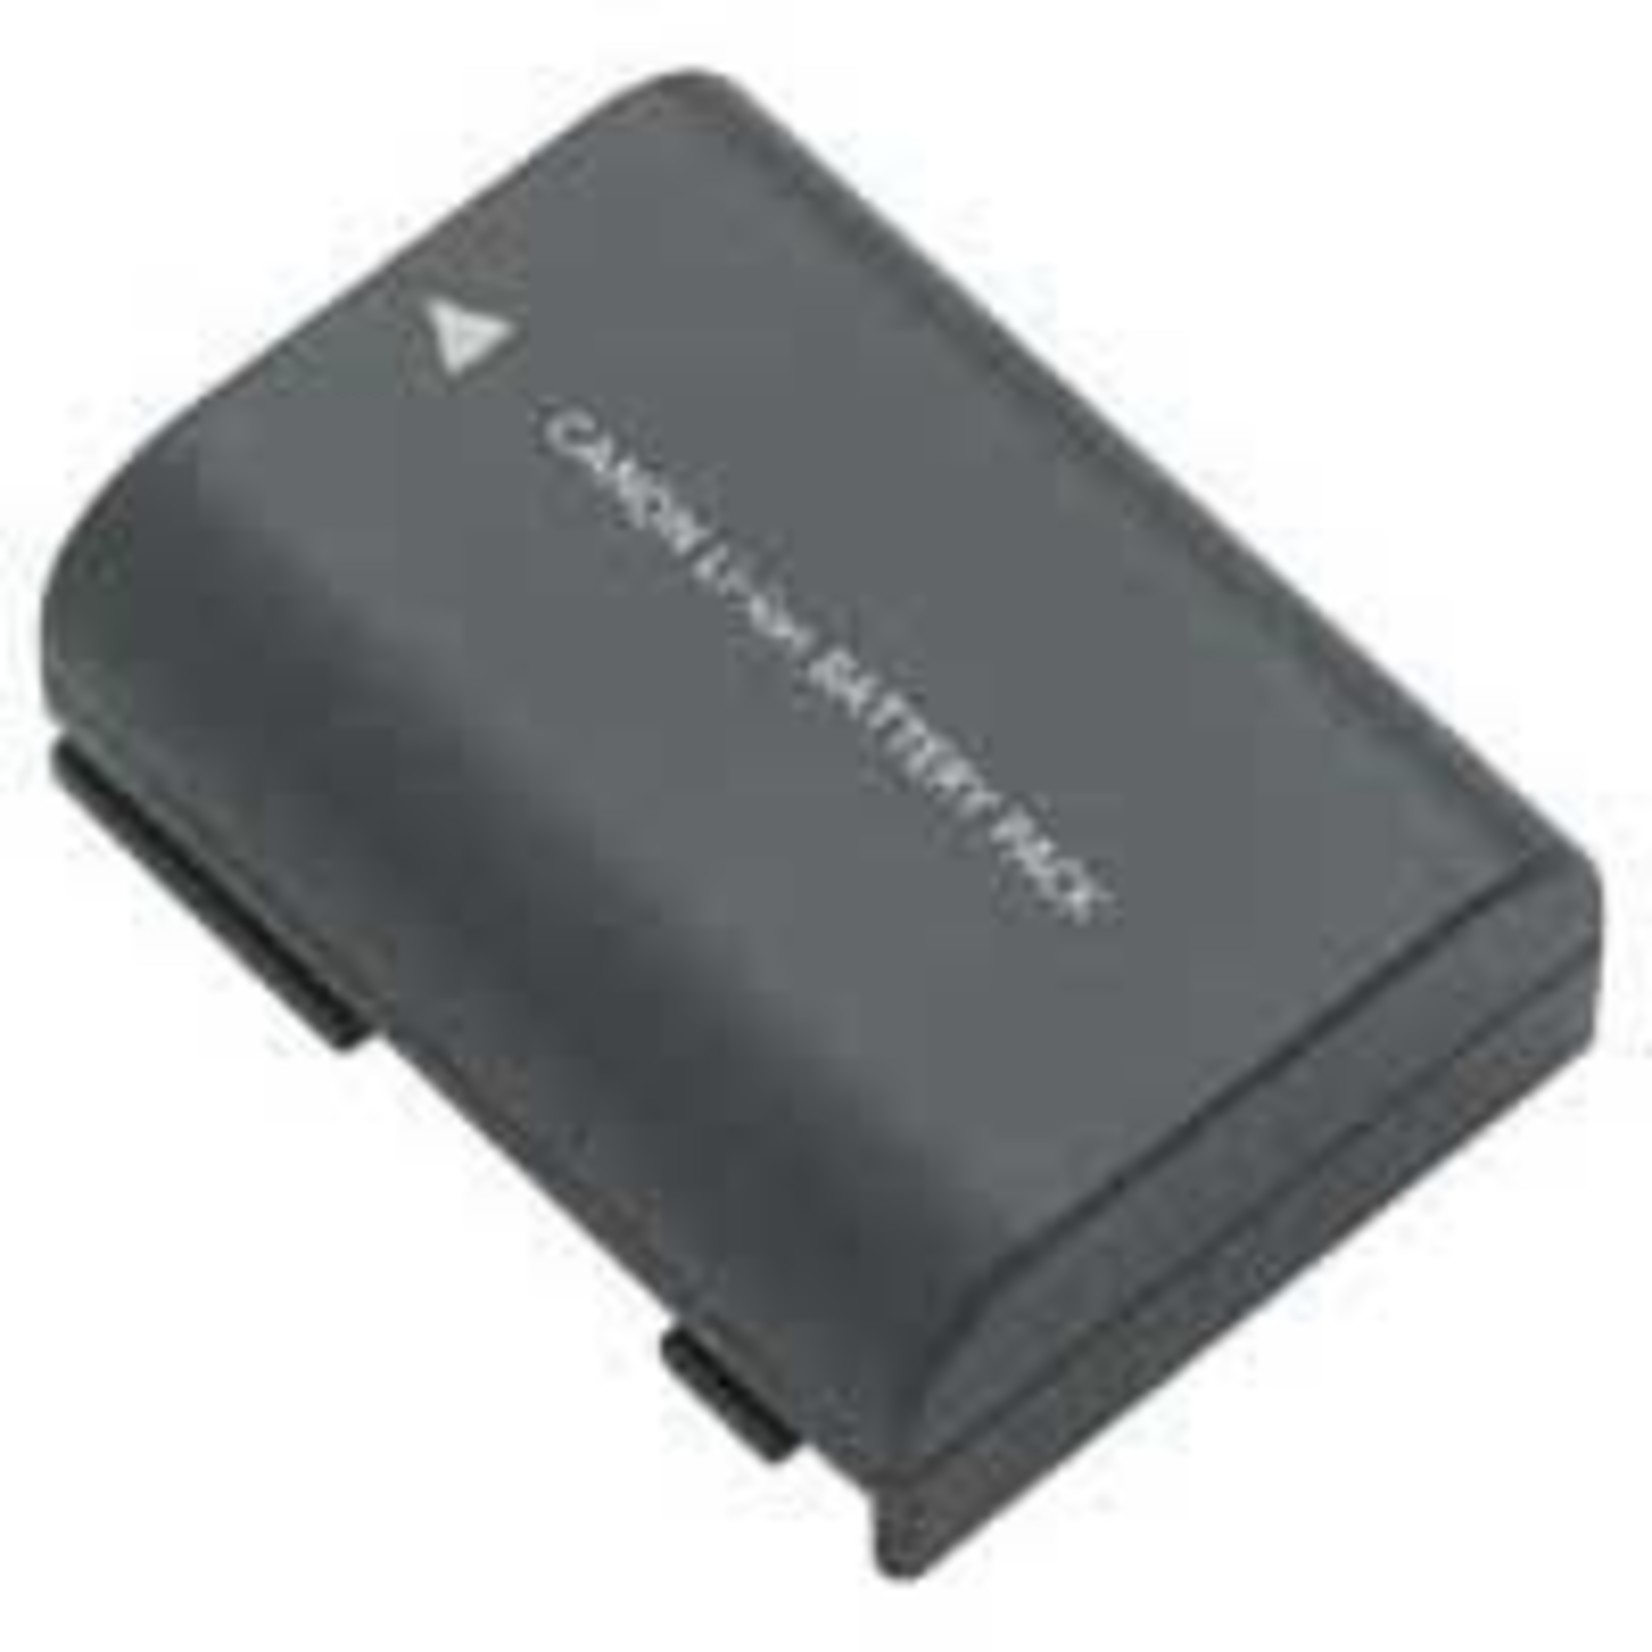 Canon Canon NB-2LH Rechargeable Lithium-Ion Battery Pack (7.4v 720mAh)